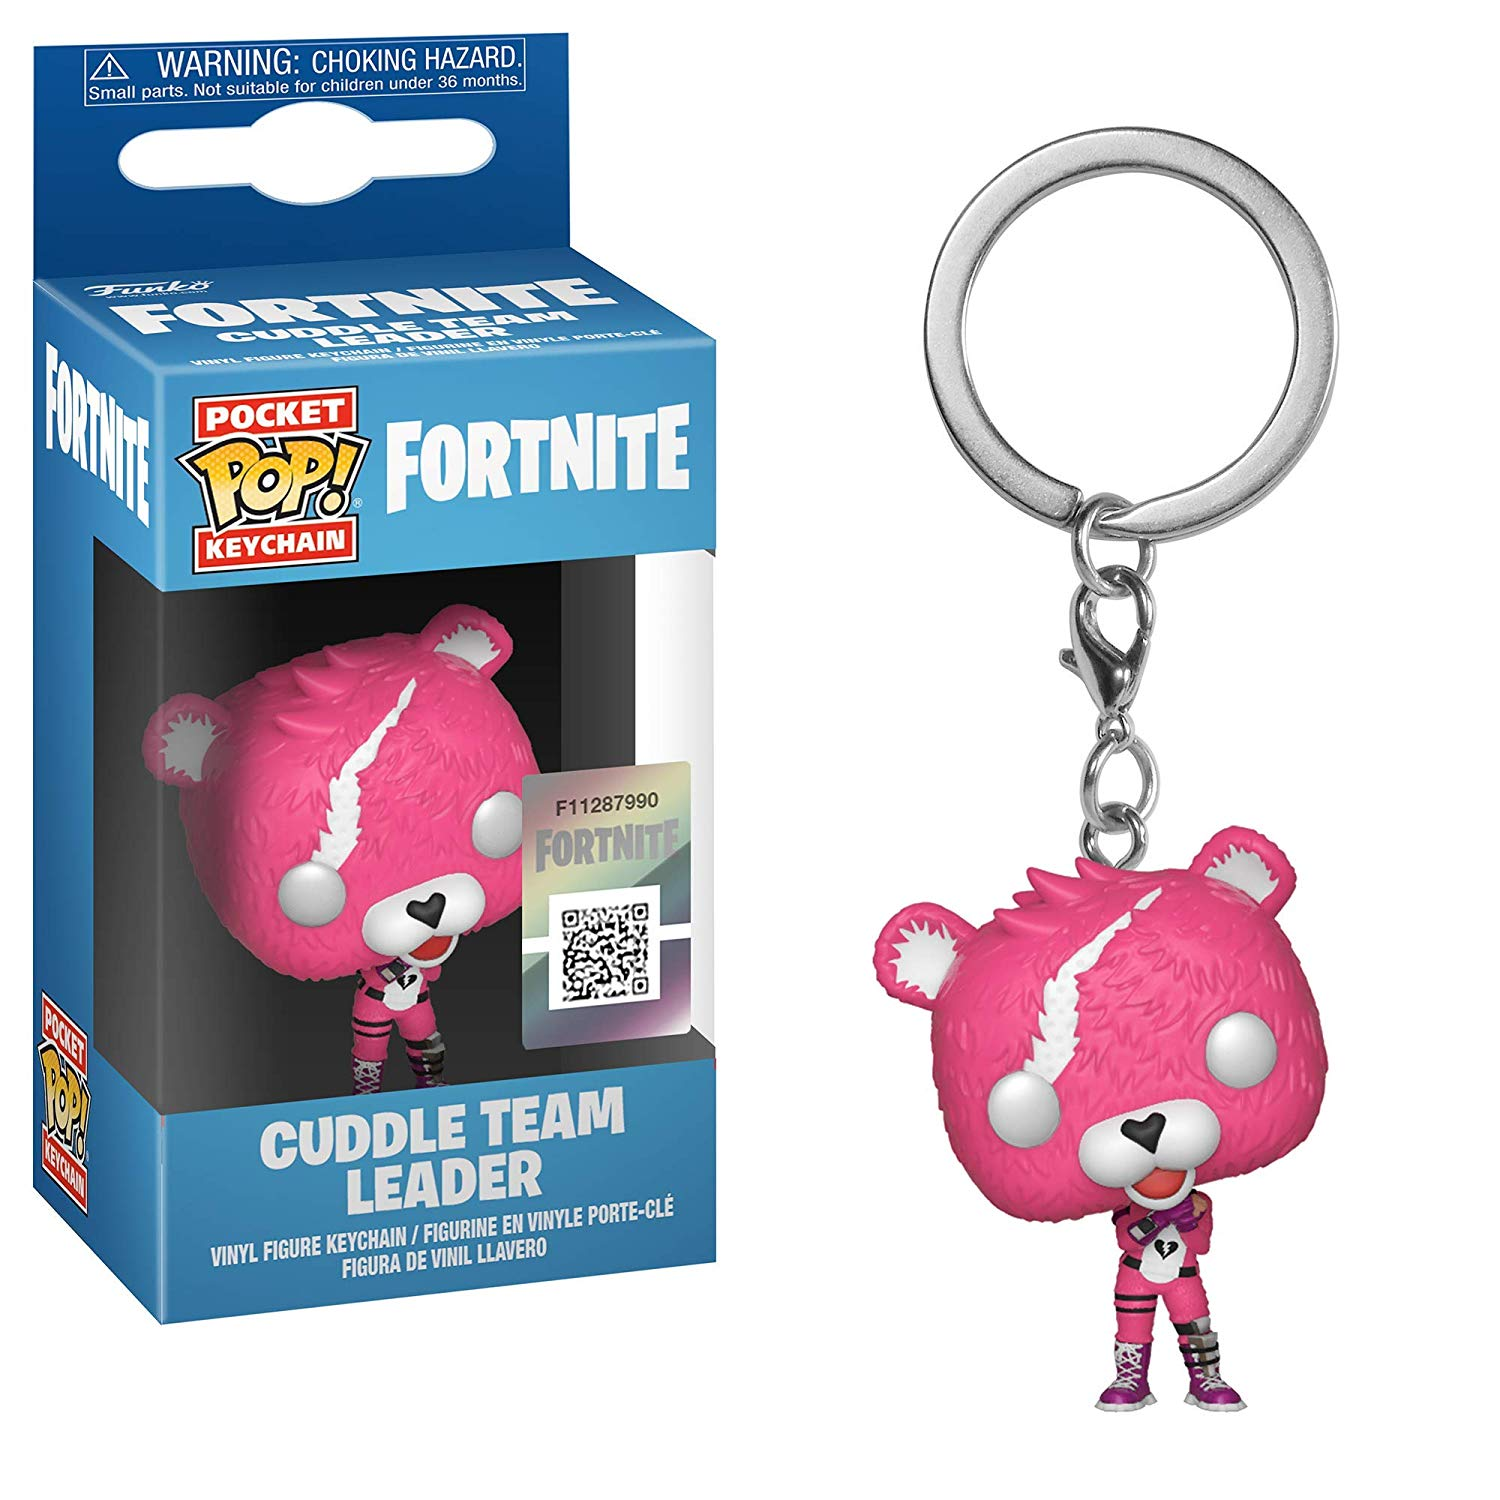 Pocket Pop Keychain Fortnite Cuddle Team Leader